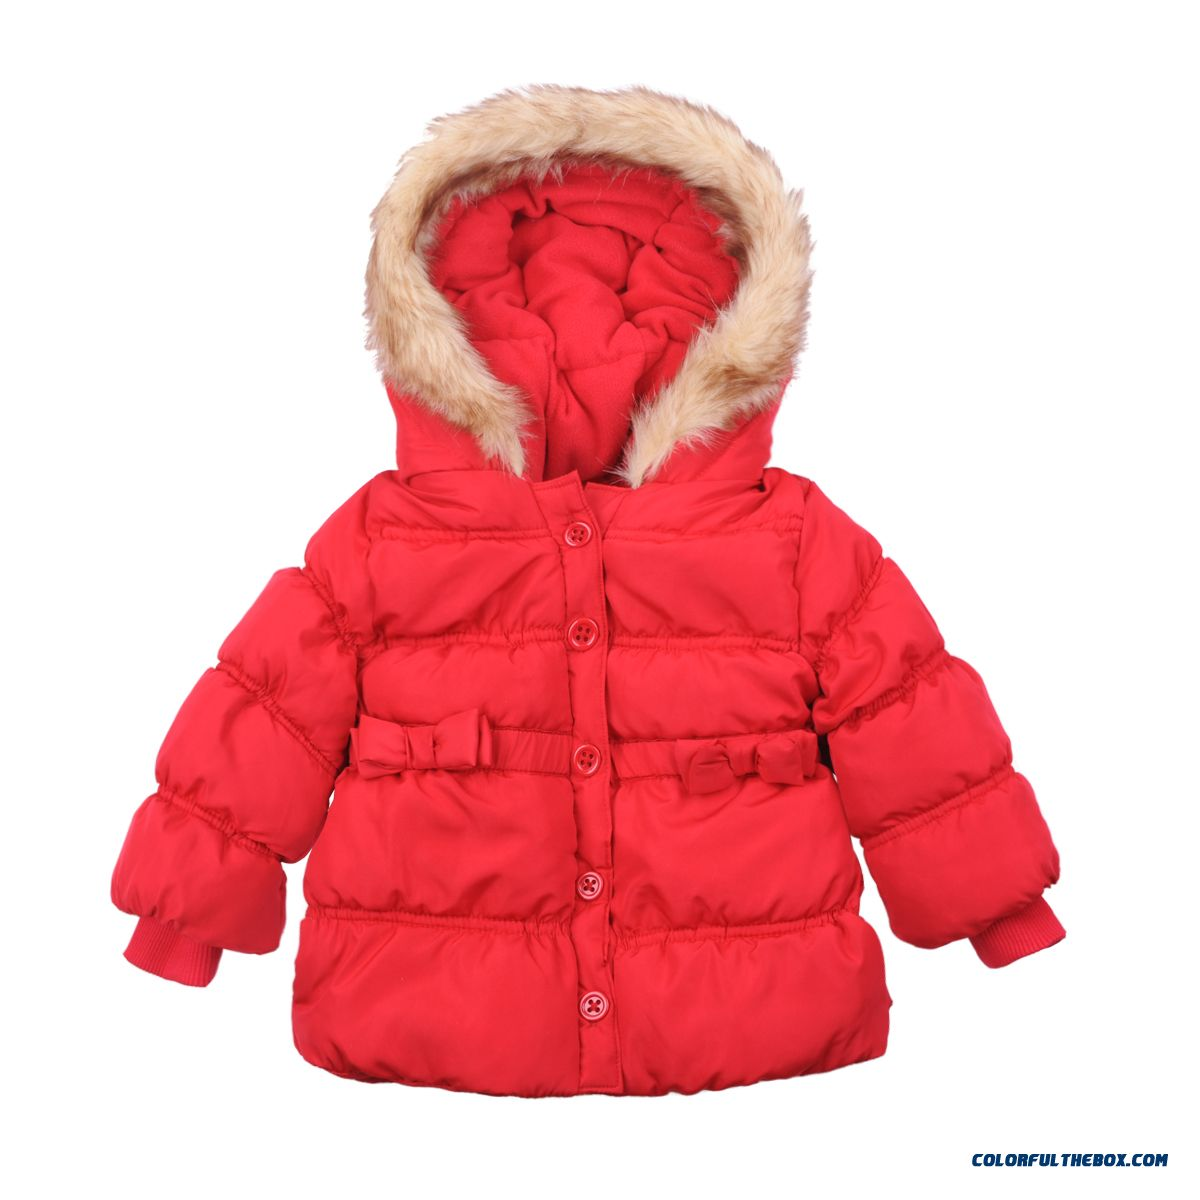 Loss Clearance Kids Girls Cotton Jacket Red Clothing 100% Cotton Material